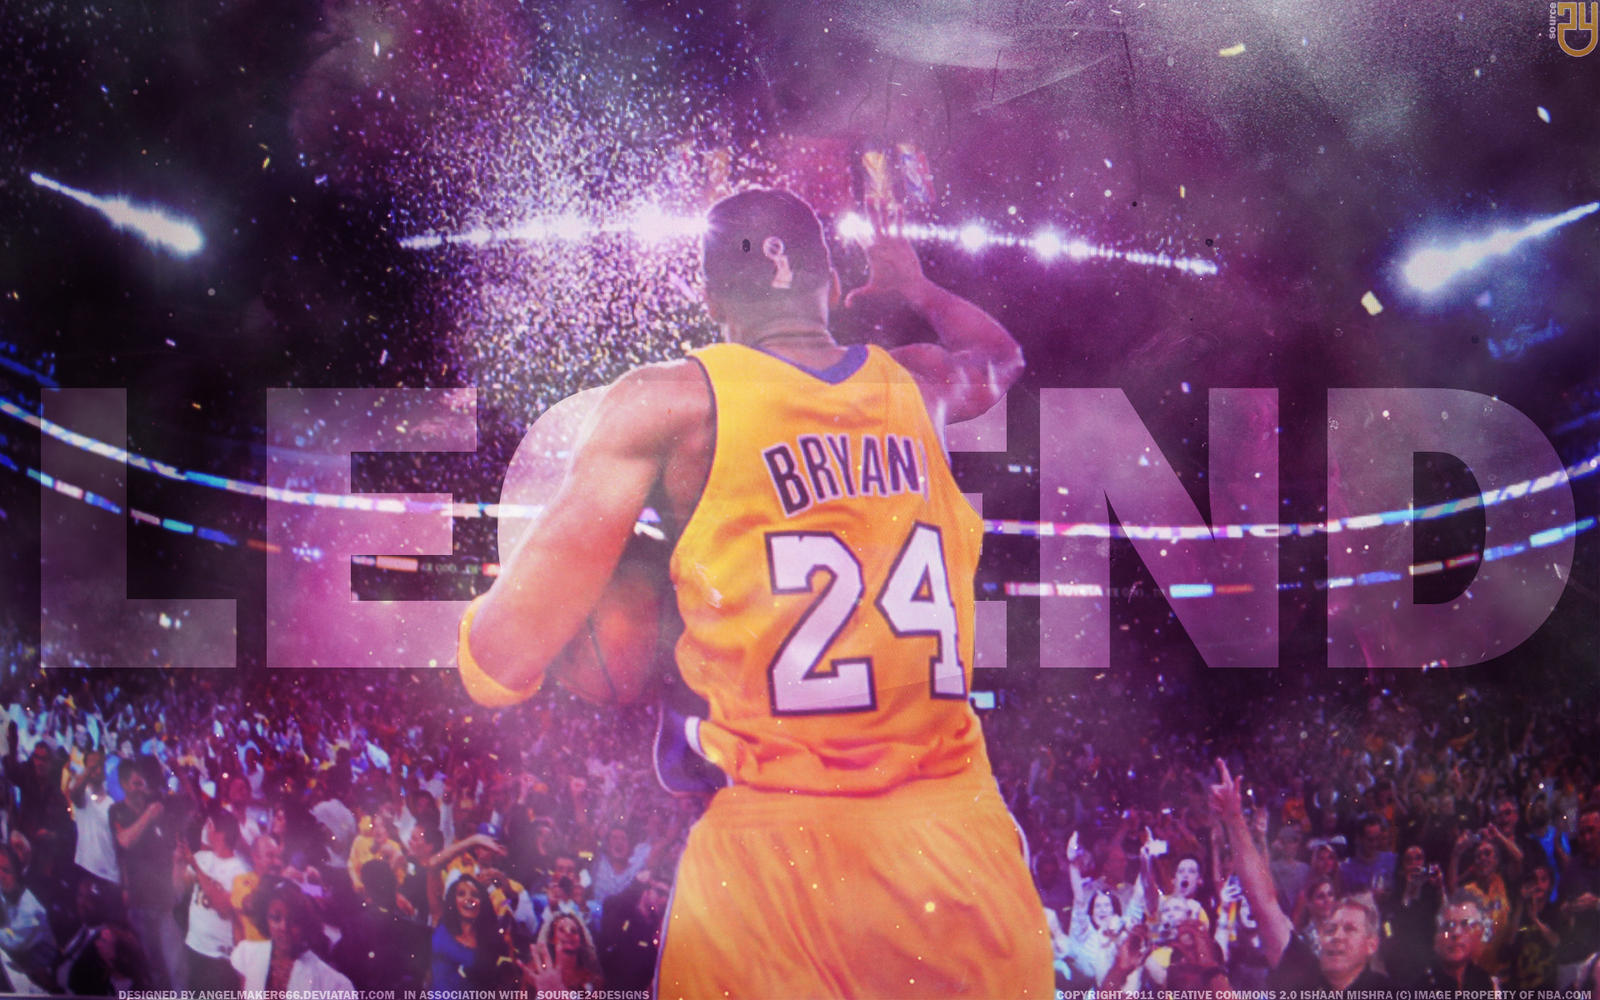 The Top 10 Los Angeles Lakers Kobe Bryant Nba Wallpapers Installation 1 Bleacher Report Latest News Videos And Highlights